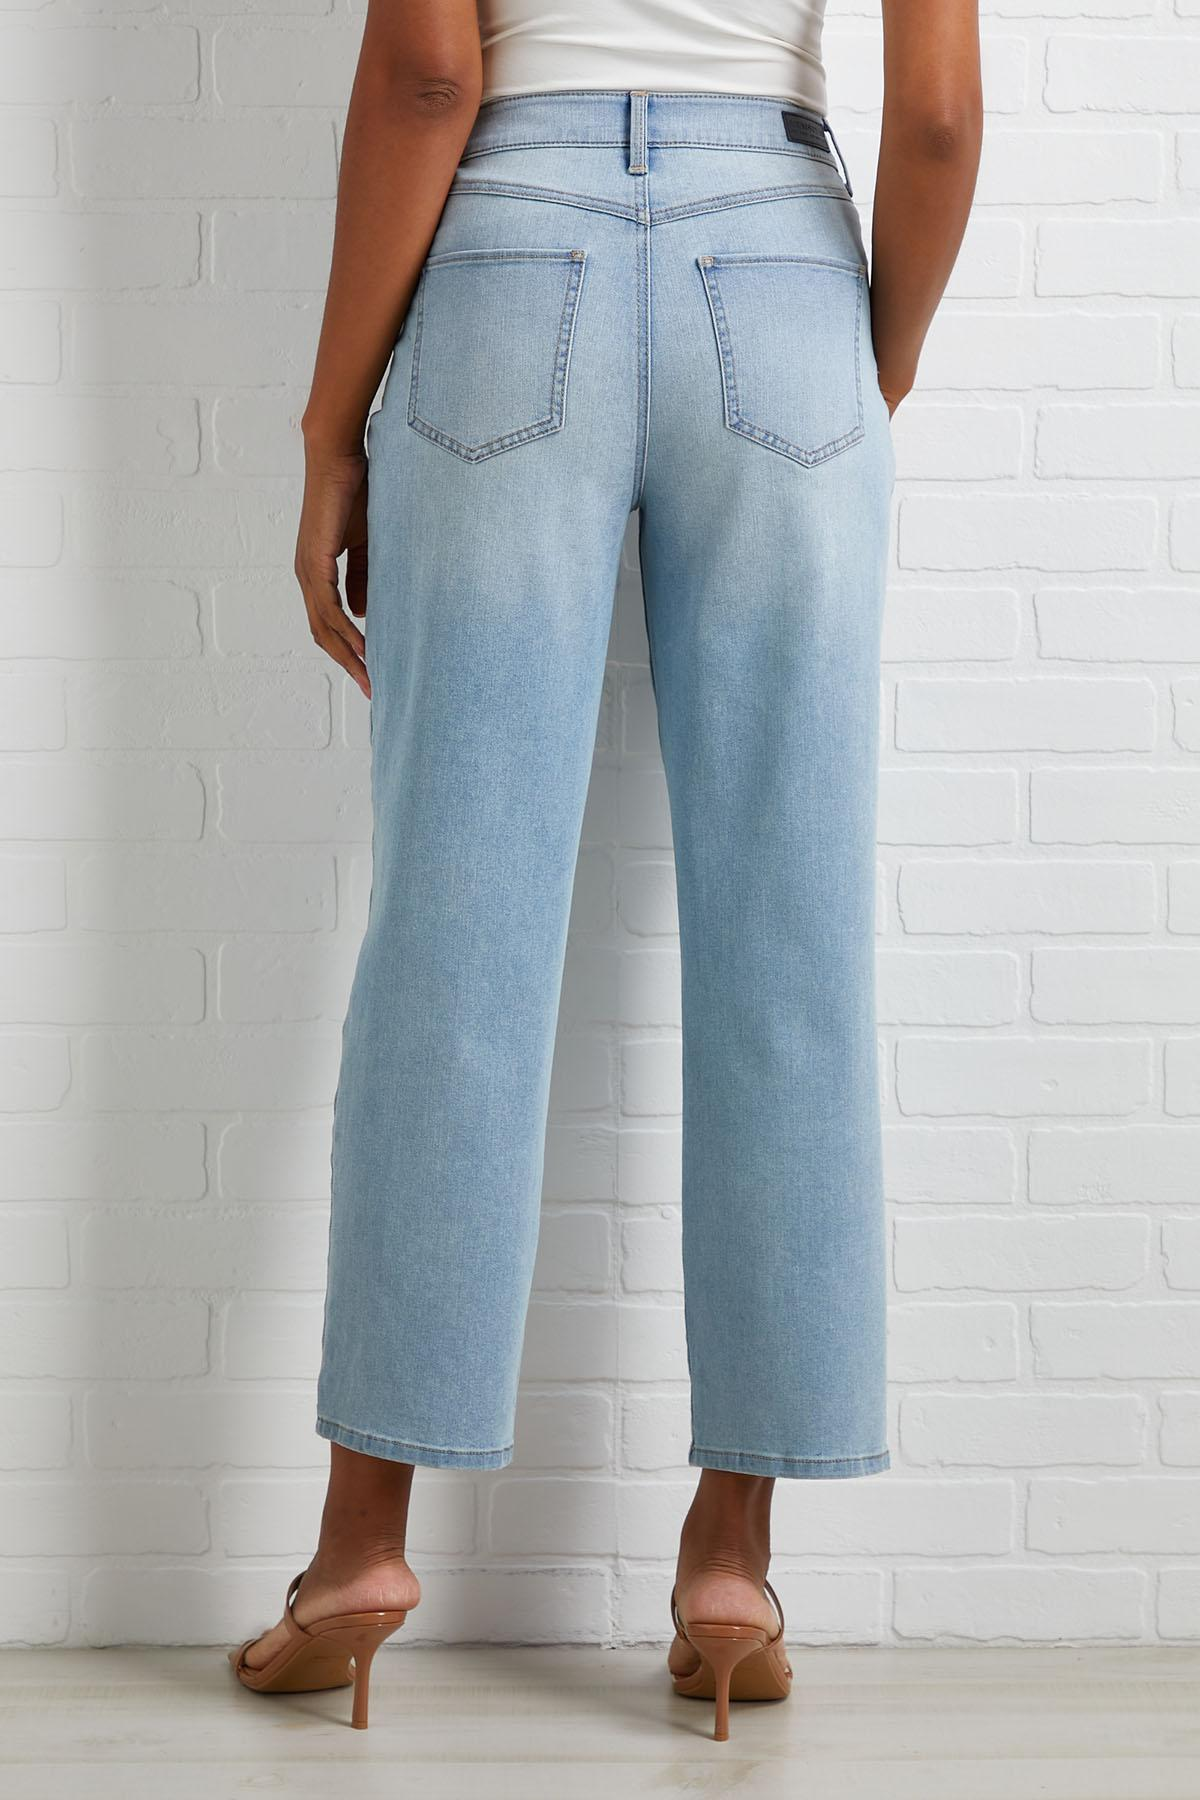 Stacy's Mom Jeans